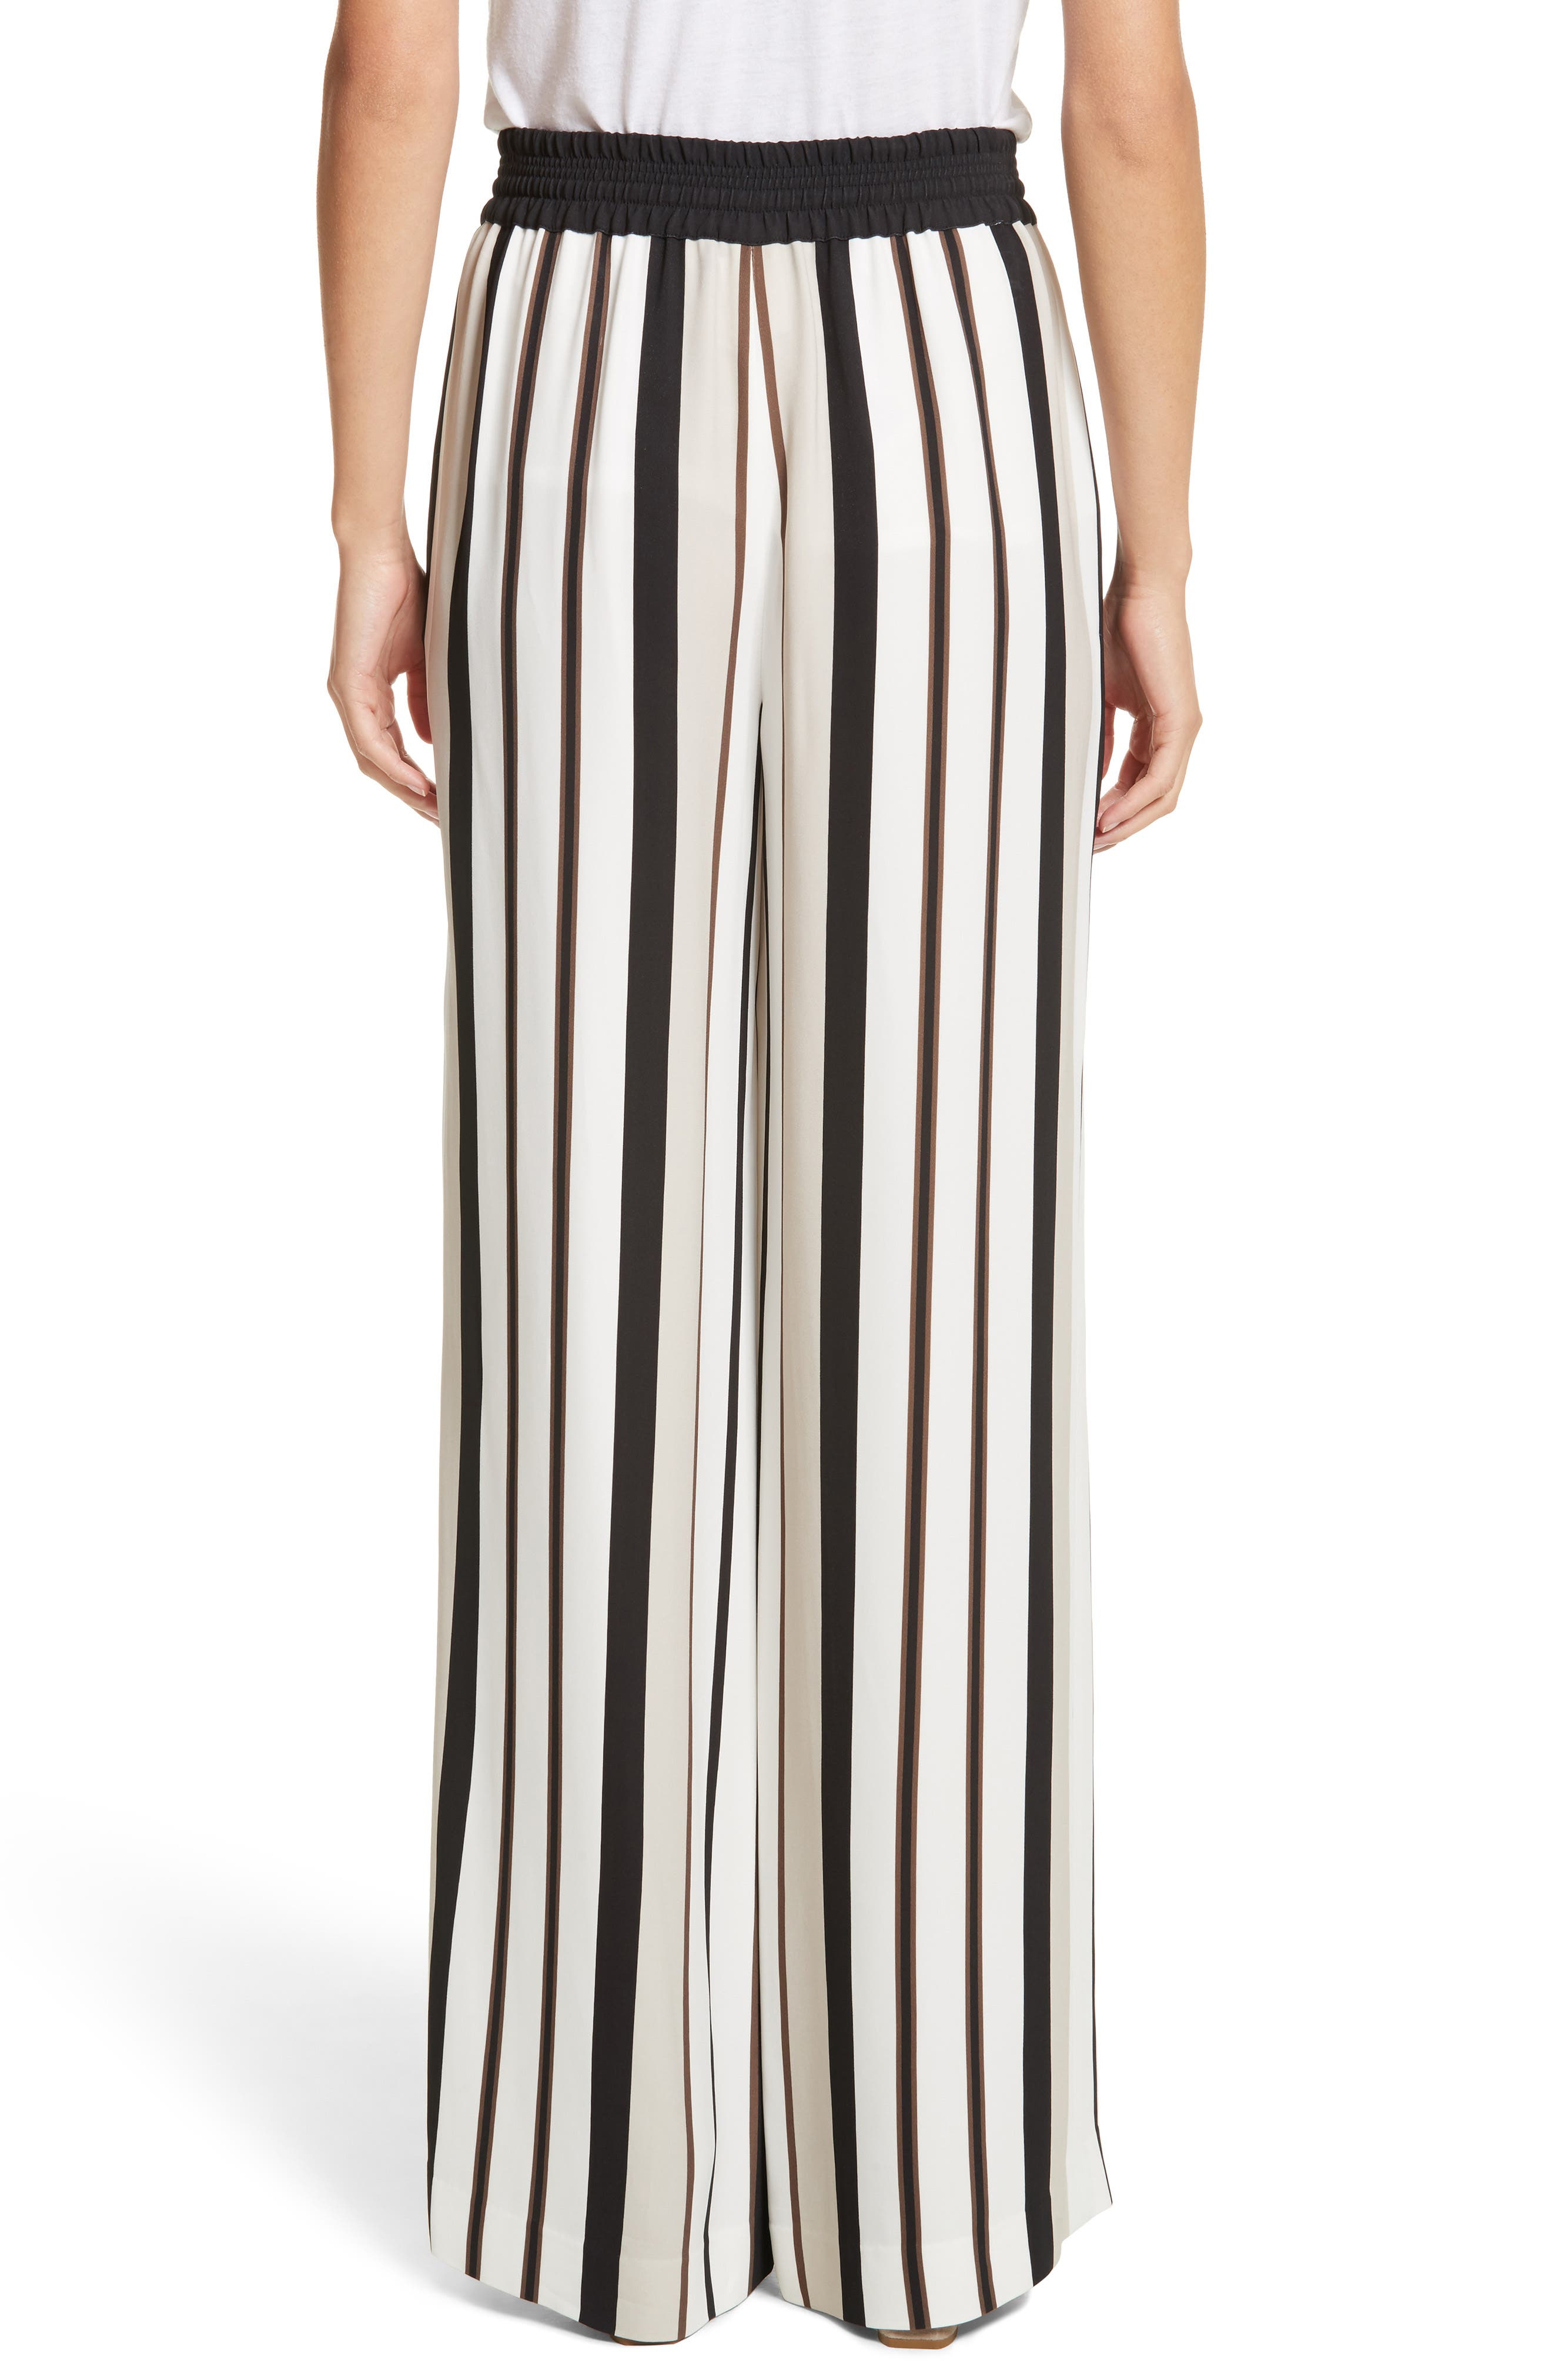 LAFAYETTE 148 NEW YORK,                             Allen Legacy Stripe Drape Cloth Pants,                             Alternate thumbnail 2, color,                             001